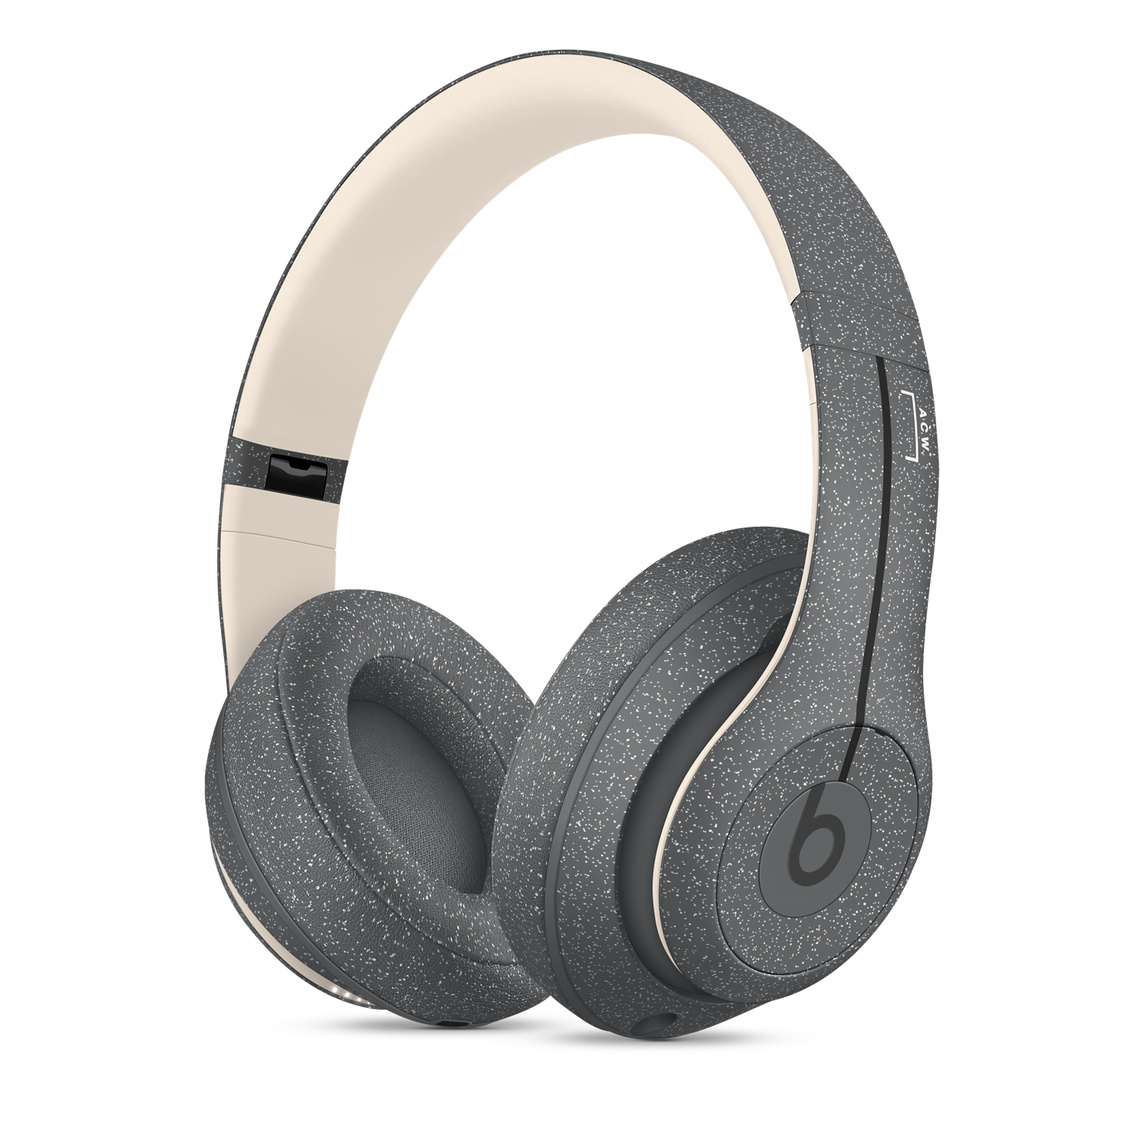 Apple Beats Studio3 A-COLD-WALL Limited Edition